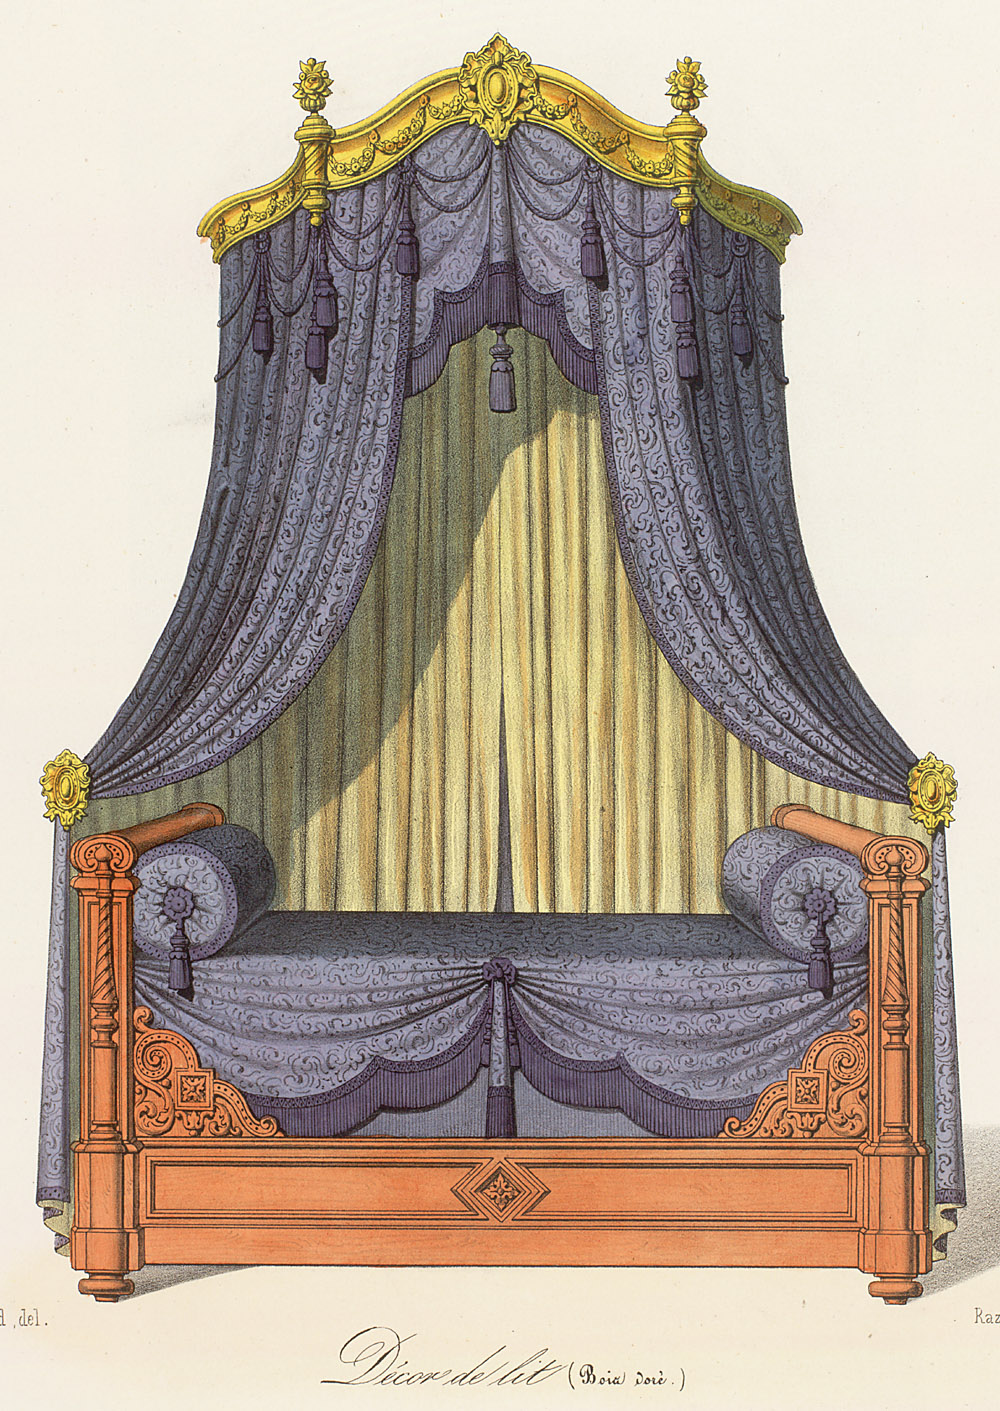 Beds (furniture),  Image number:SIL12-2-374b